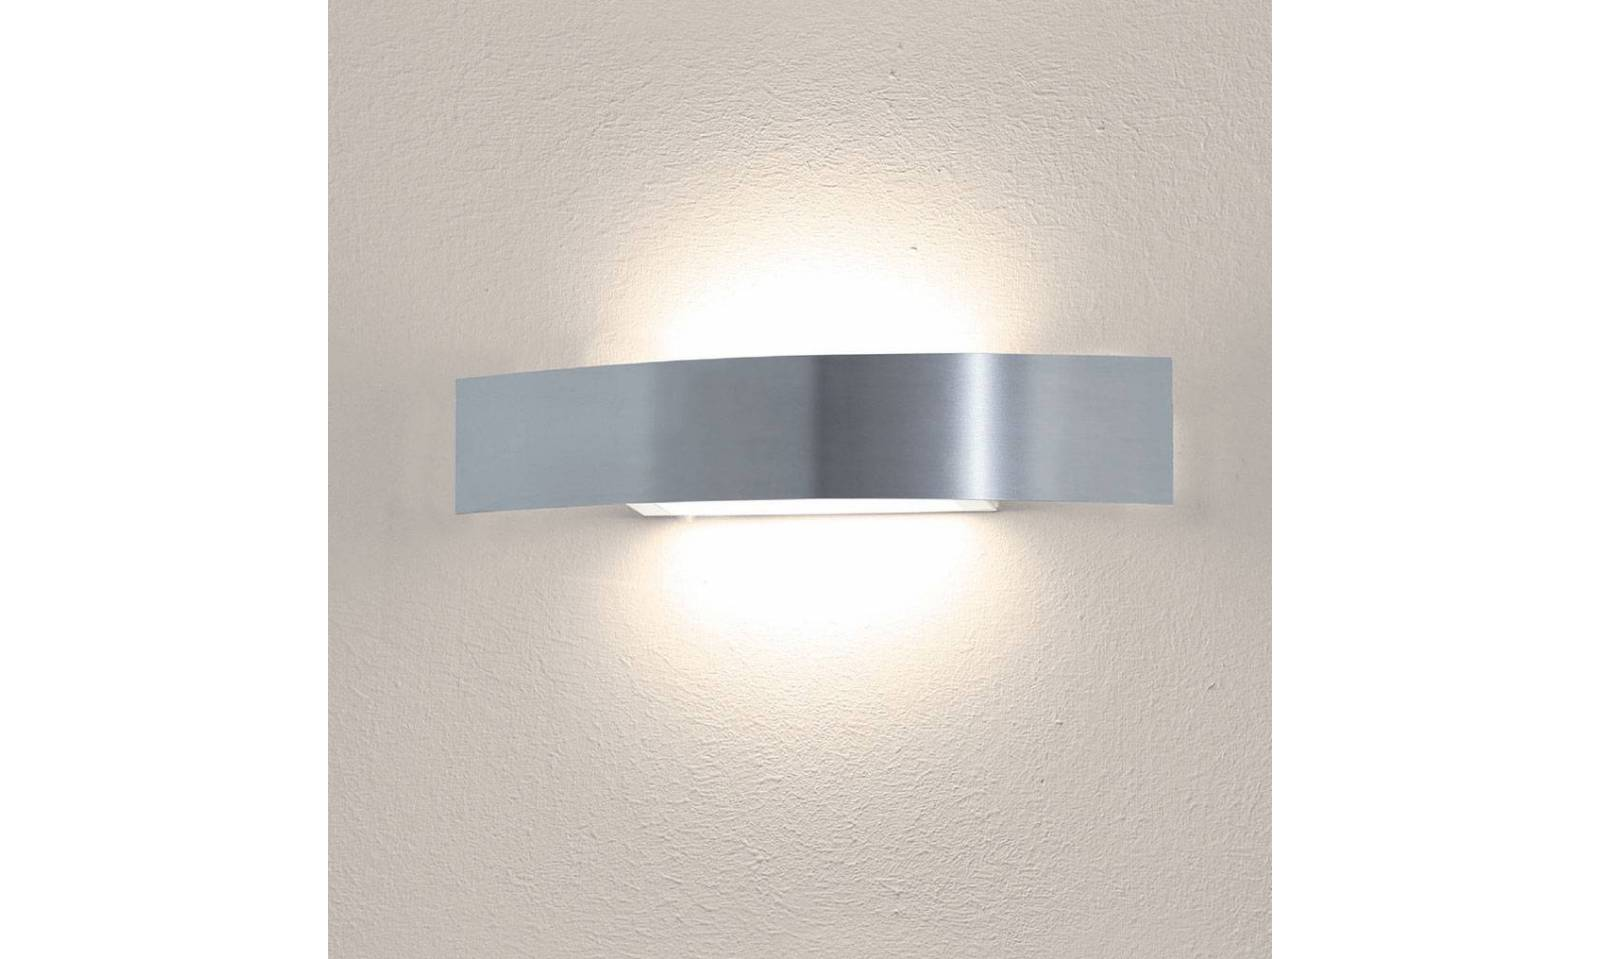 Sikrea illuminazione applique moderno led in metallo seie clip for Lampade applique